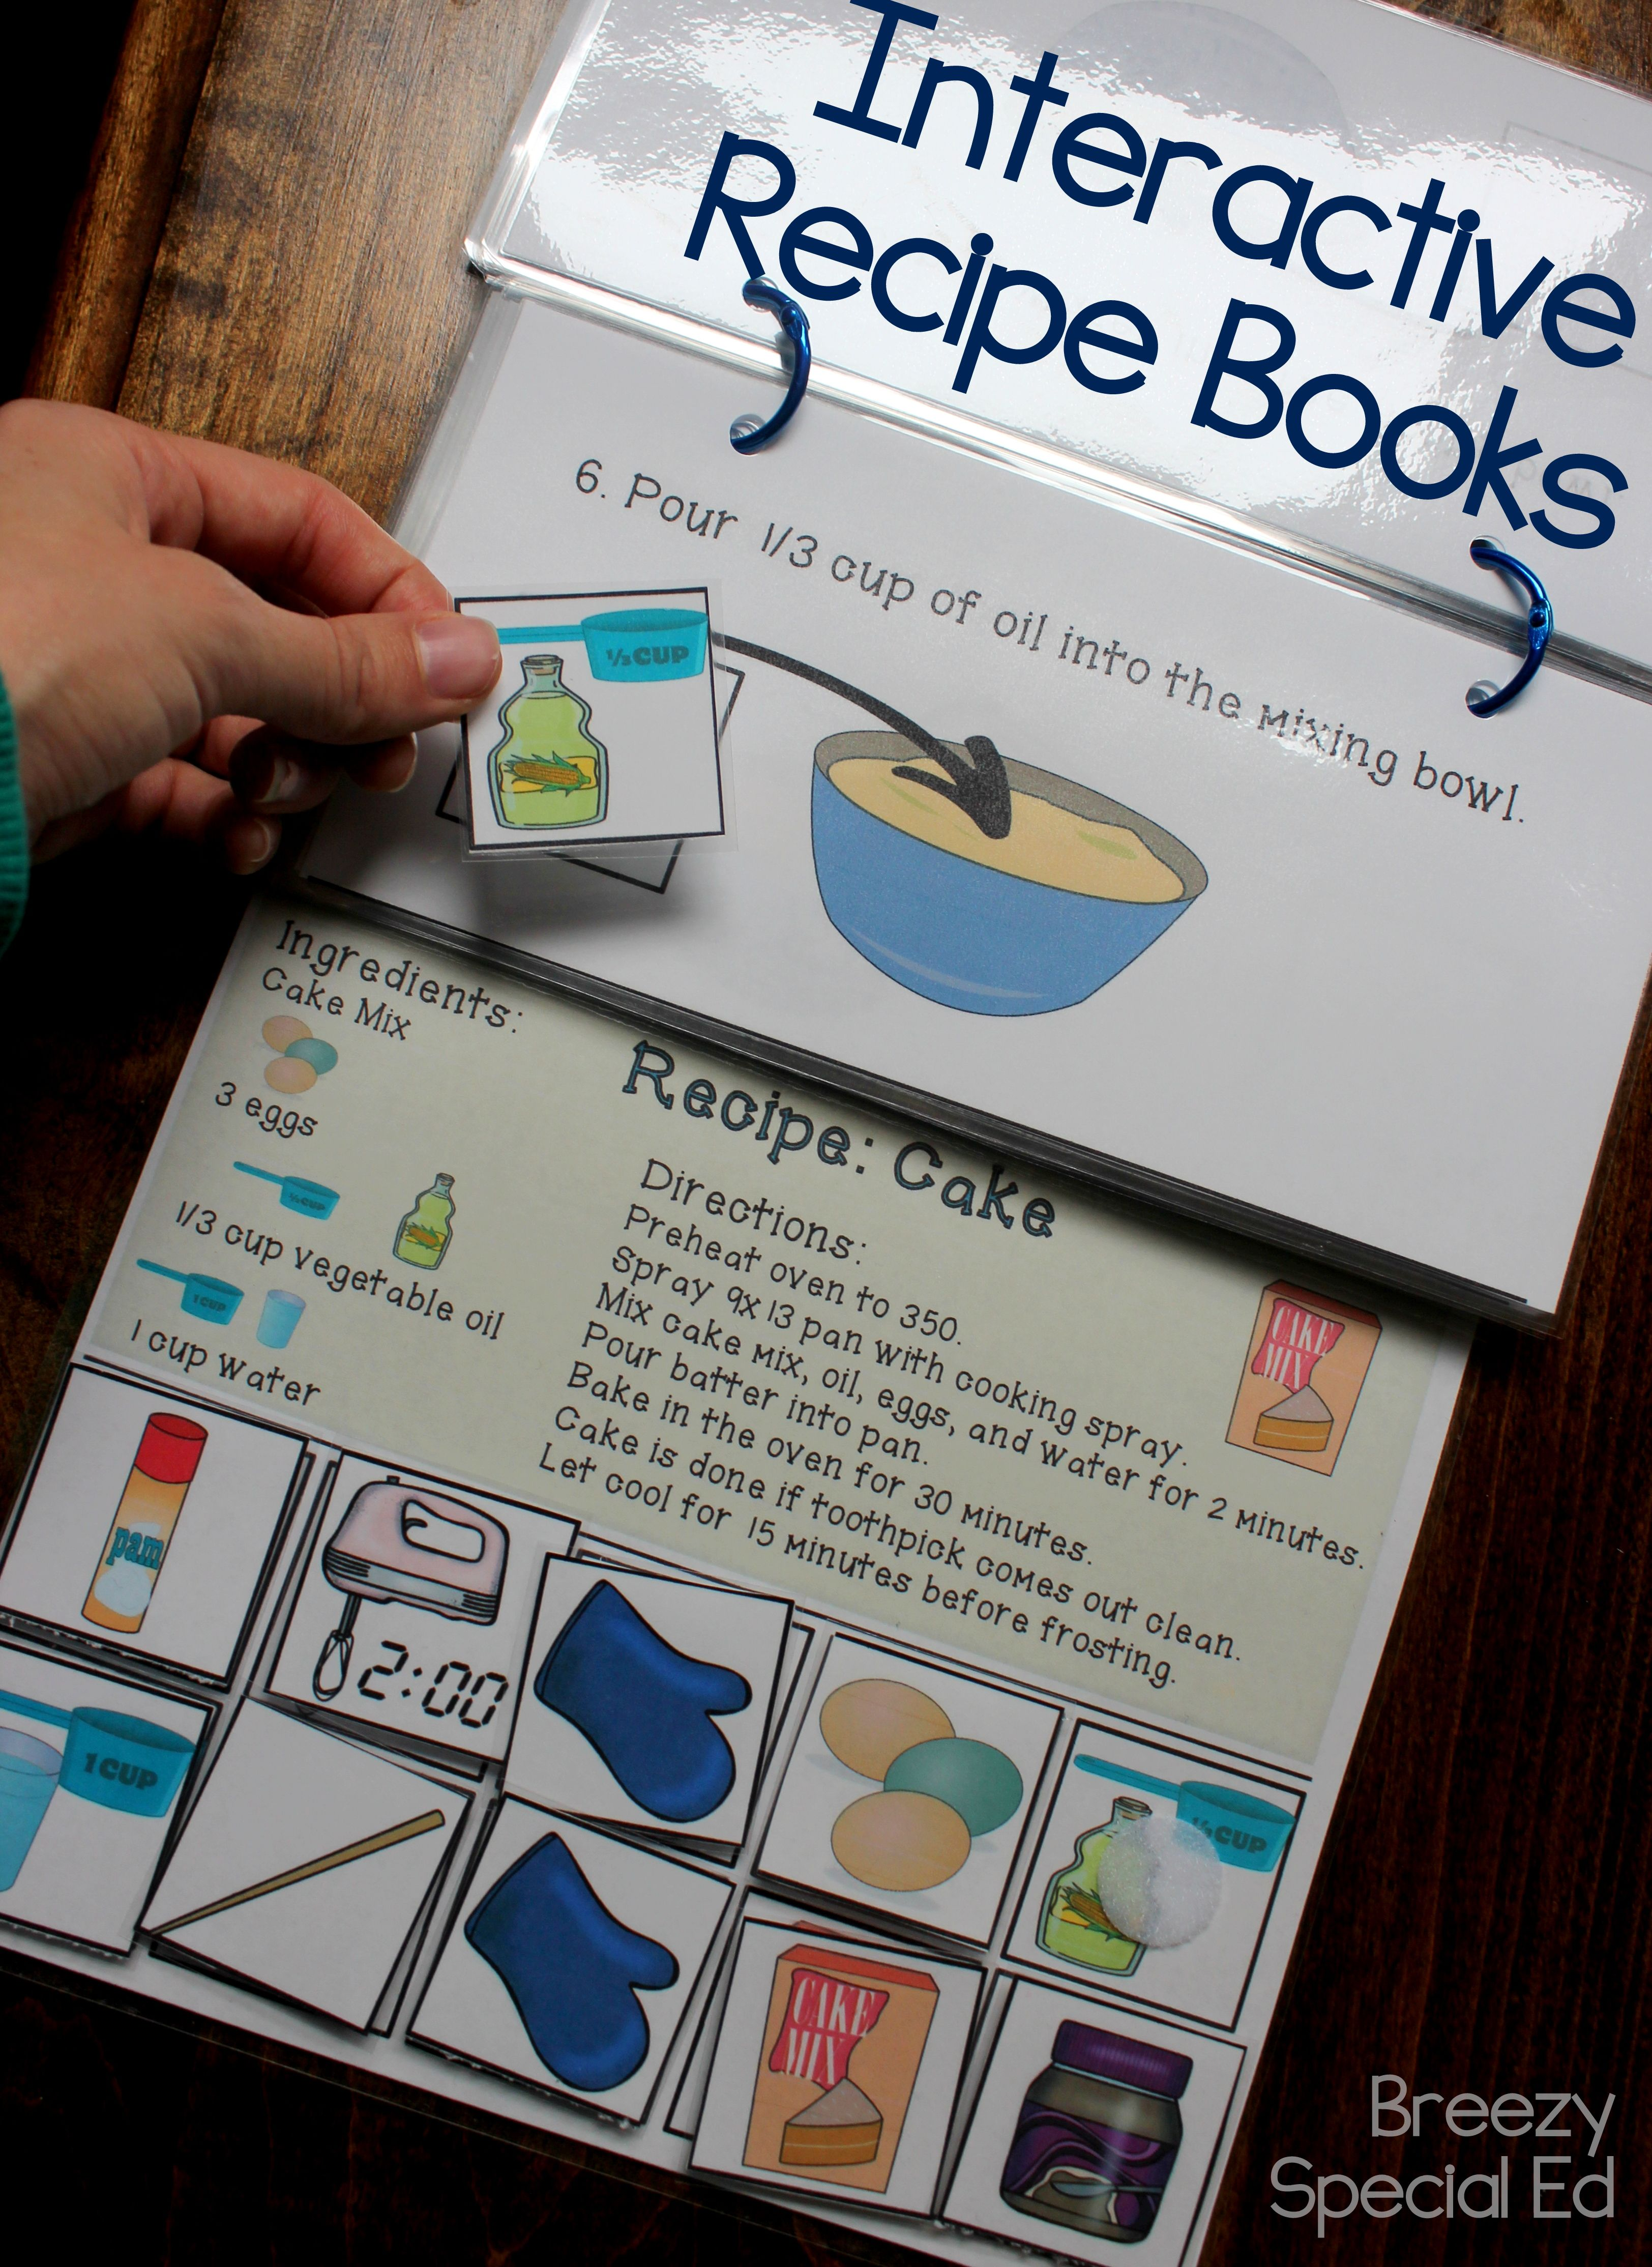 Teach steps of a recipe, even without a kitchen! These interactive / adapted books are a perfect way to practice cooking skills in the classroom. Perfect for life skills and special education! #specialeducation #iteachsped #spedtribe